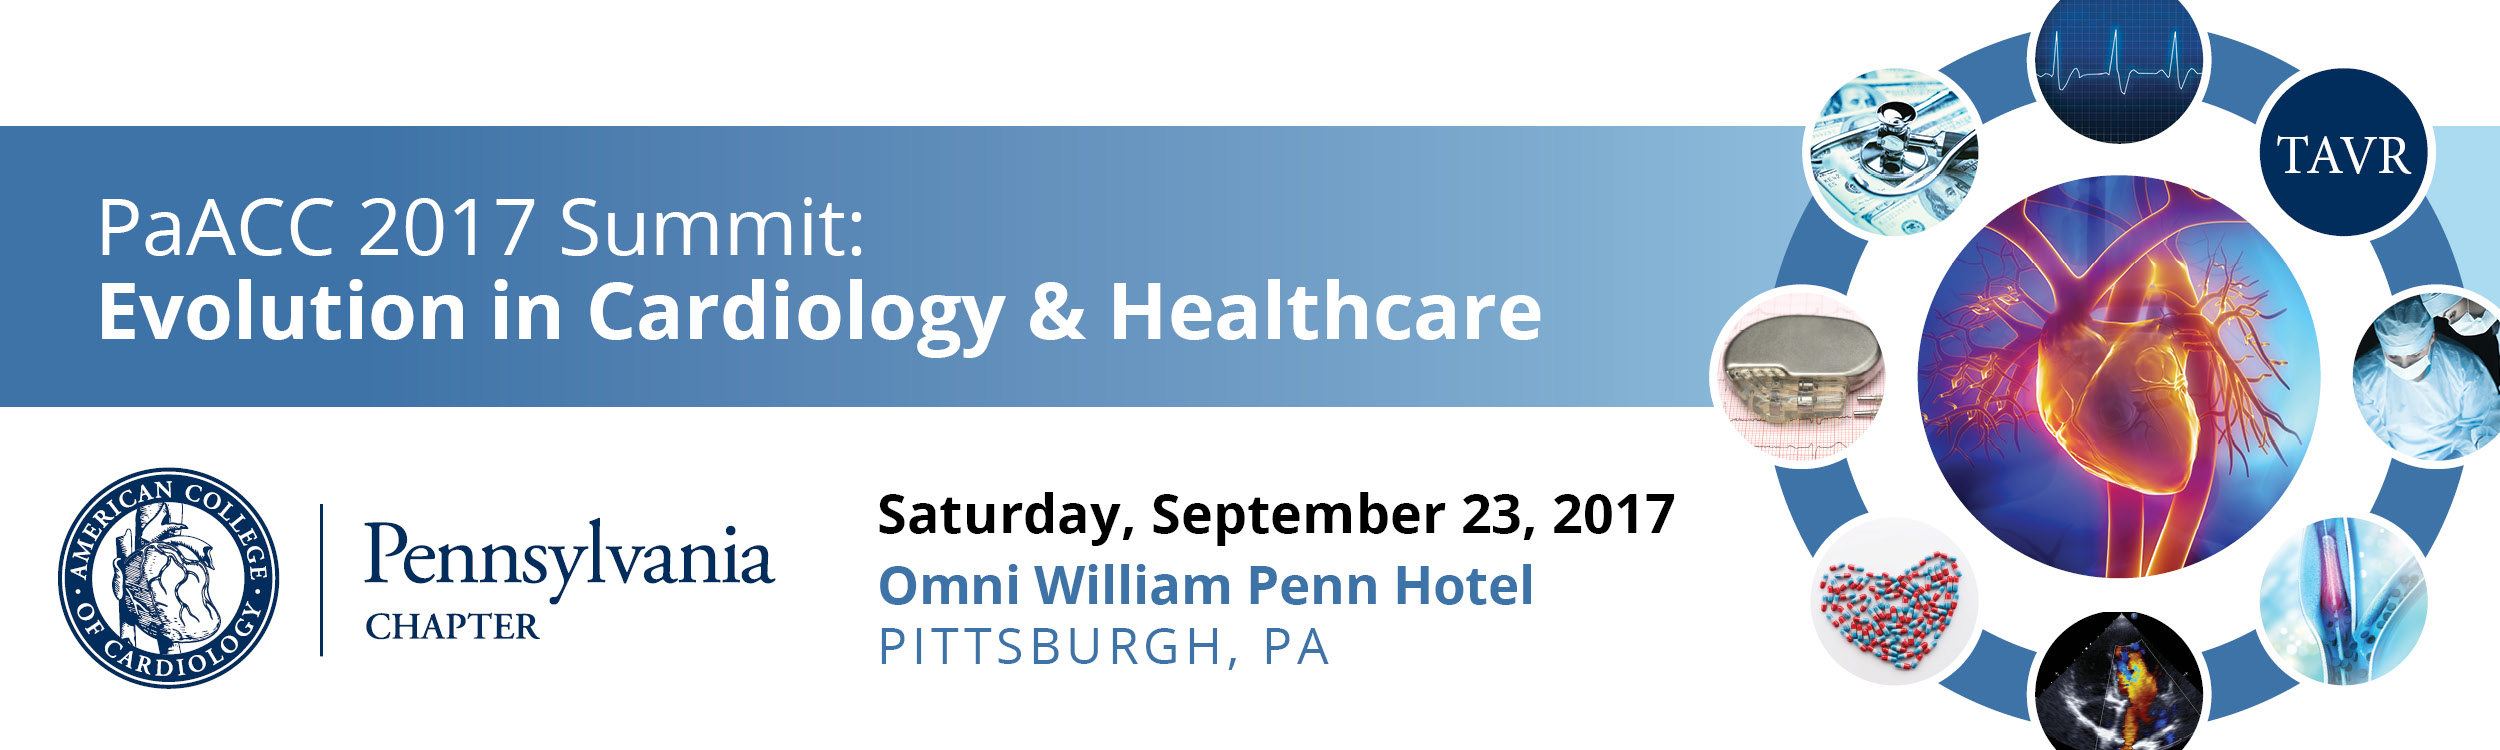 PaACC 2017 Summit: Evolution in Cardiology & Healthcare